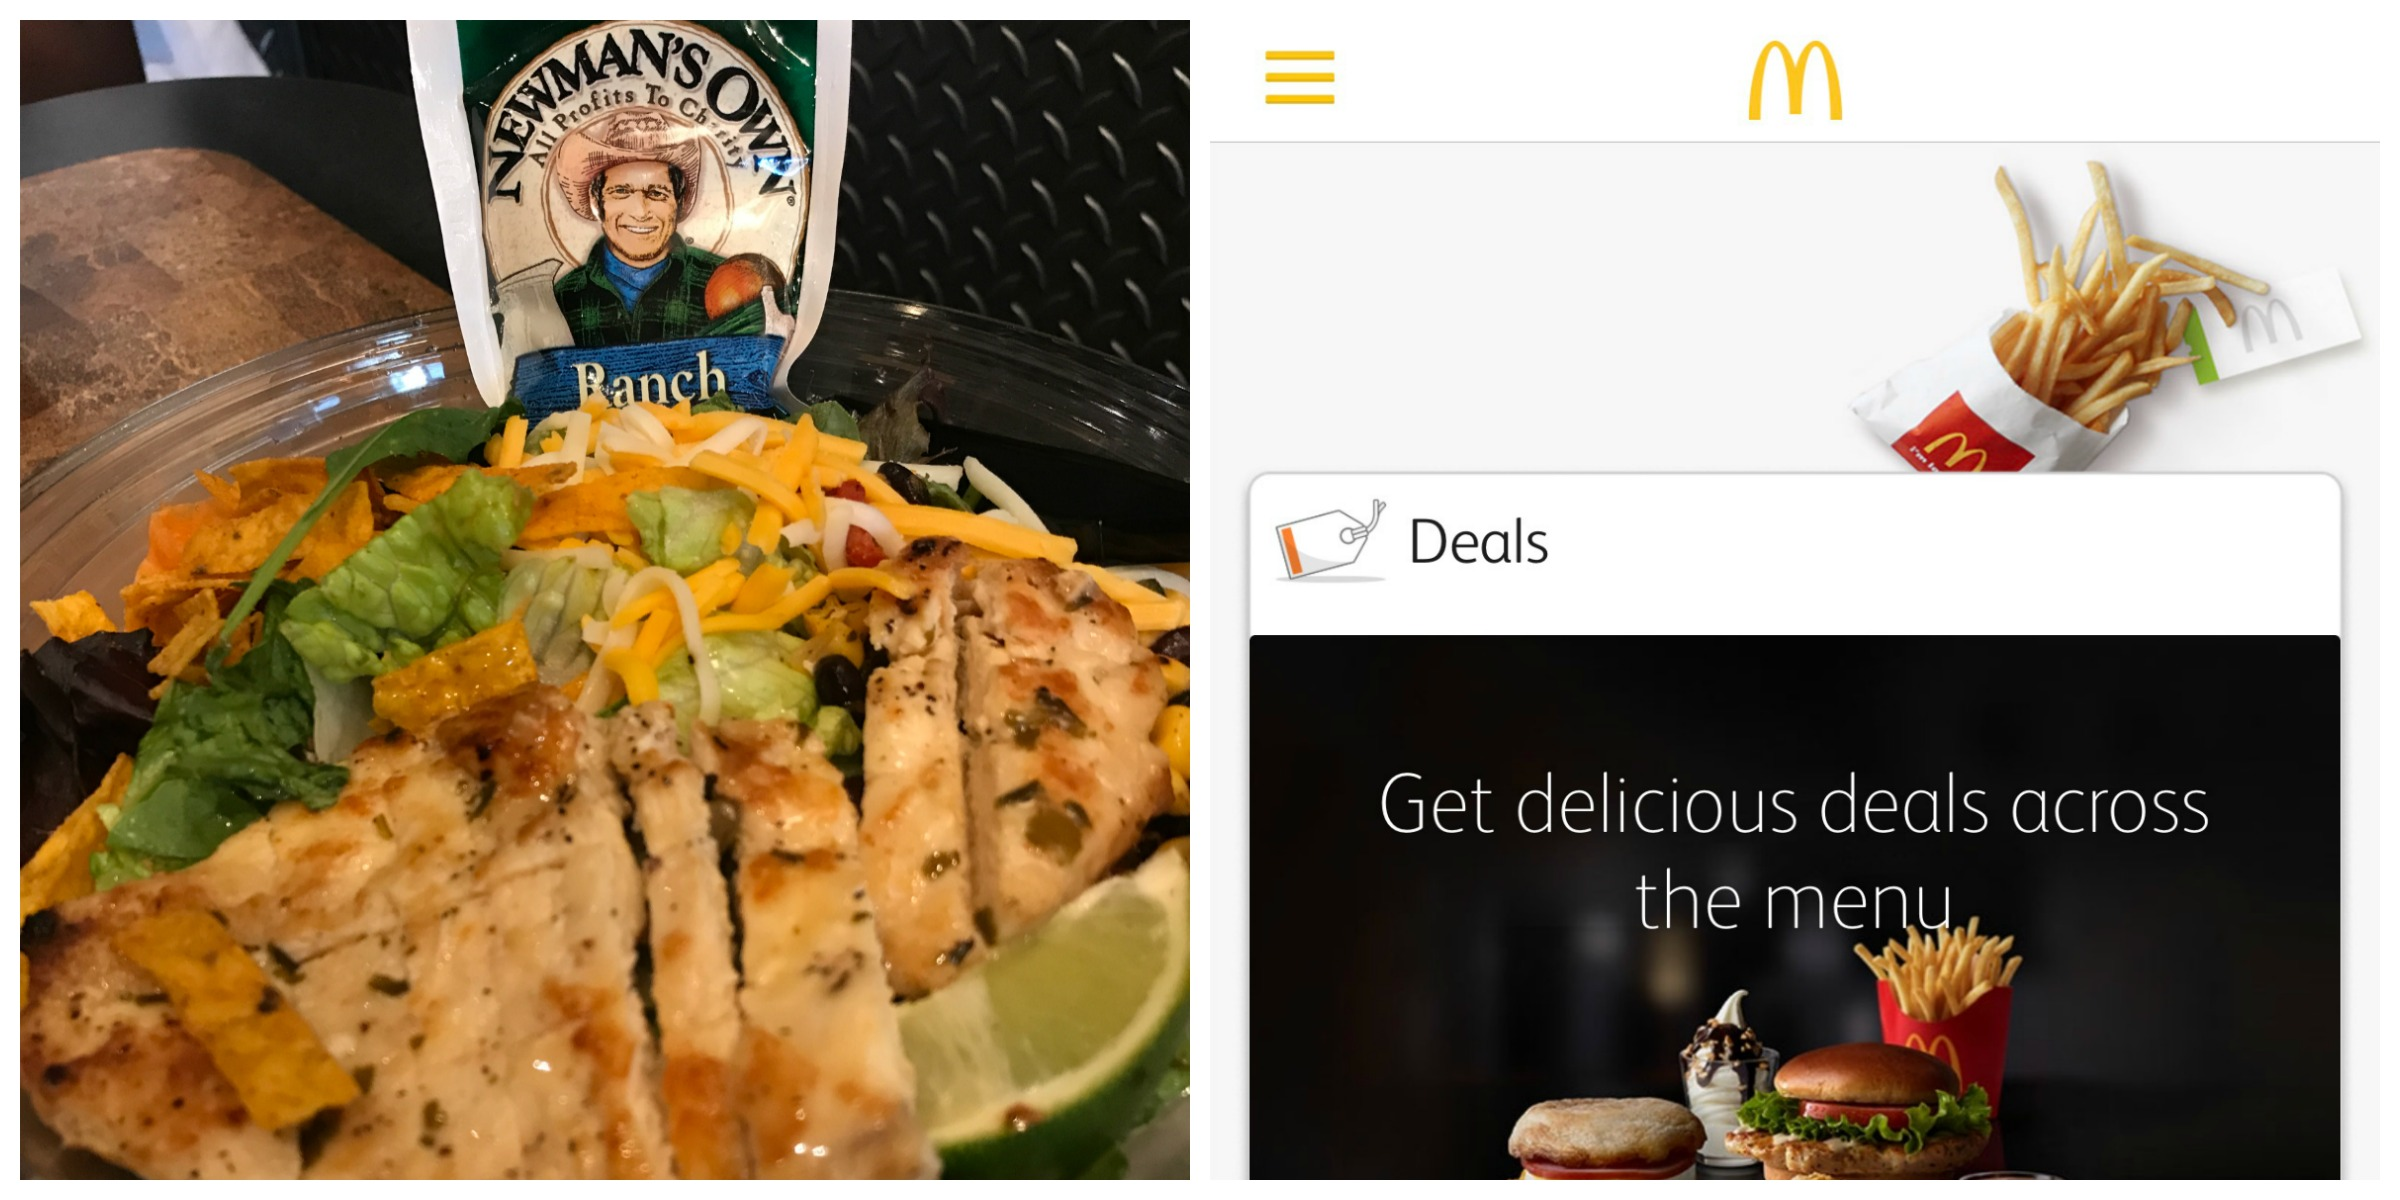 McDonald's Premium Salads Offers a Light and Refreshing Meal #McDonaldsQuality #IC ad  @McDNYTristate